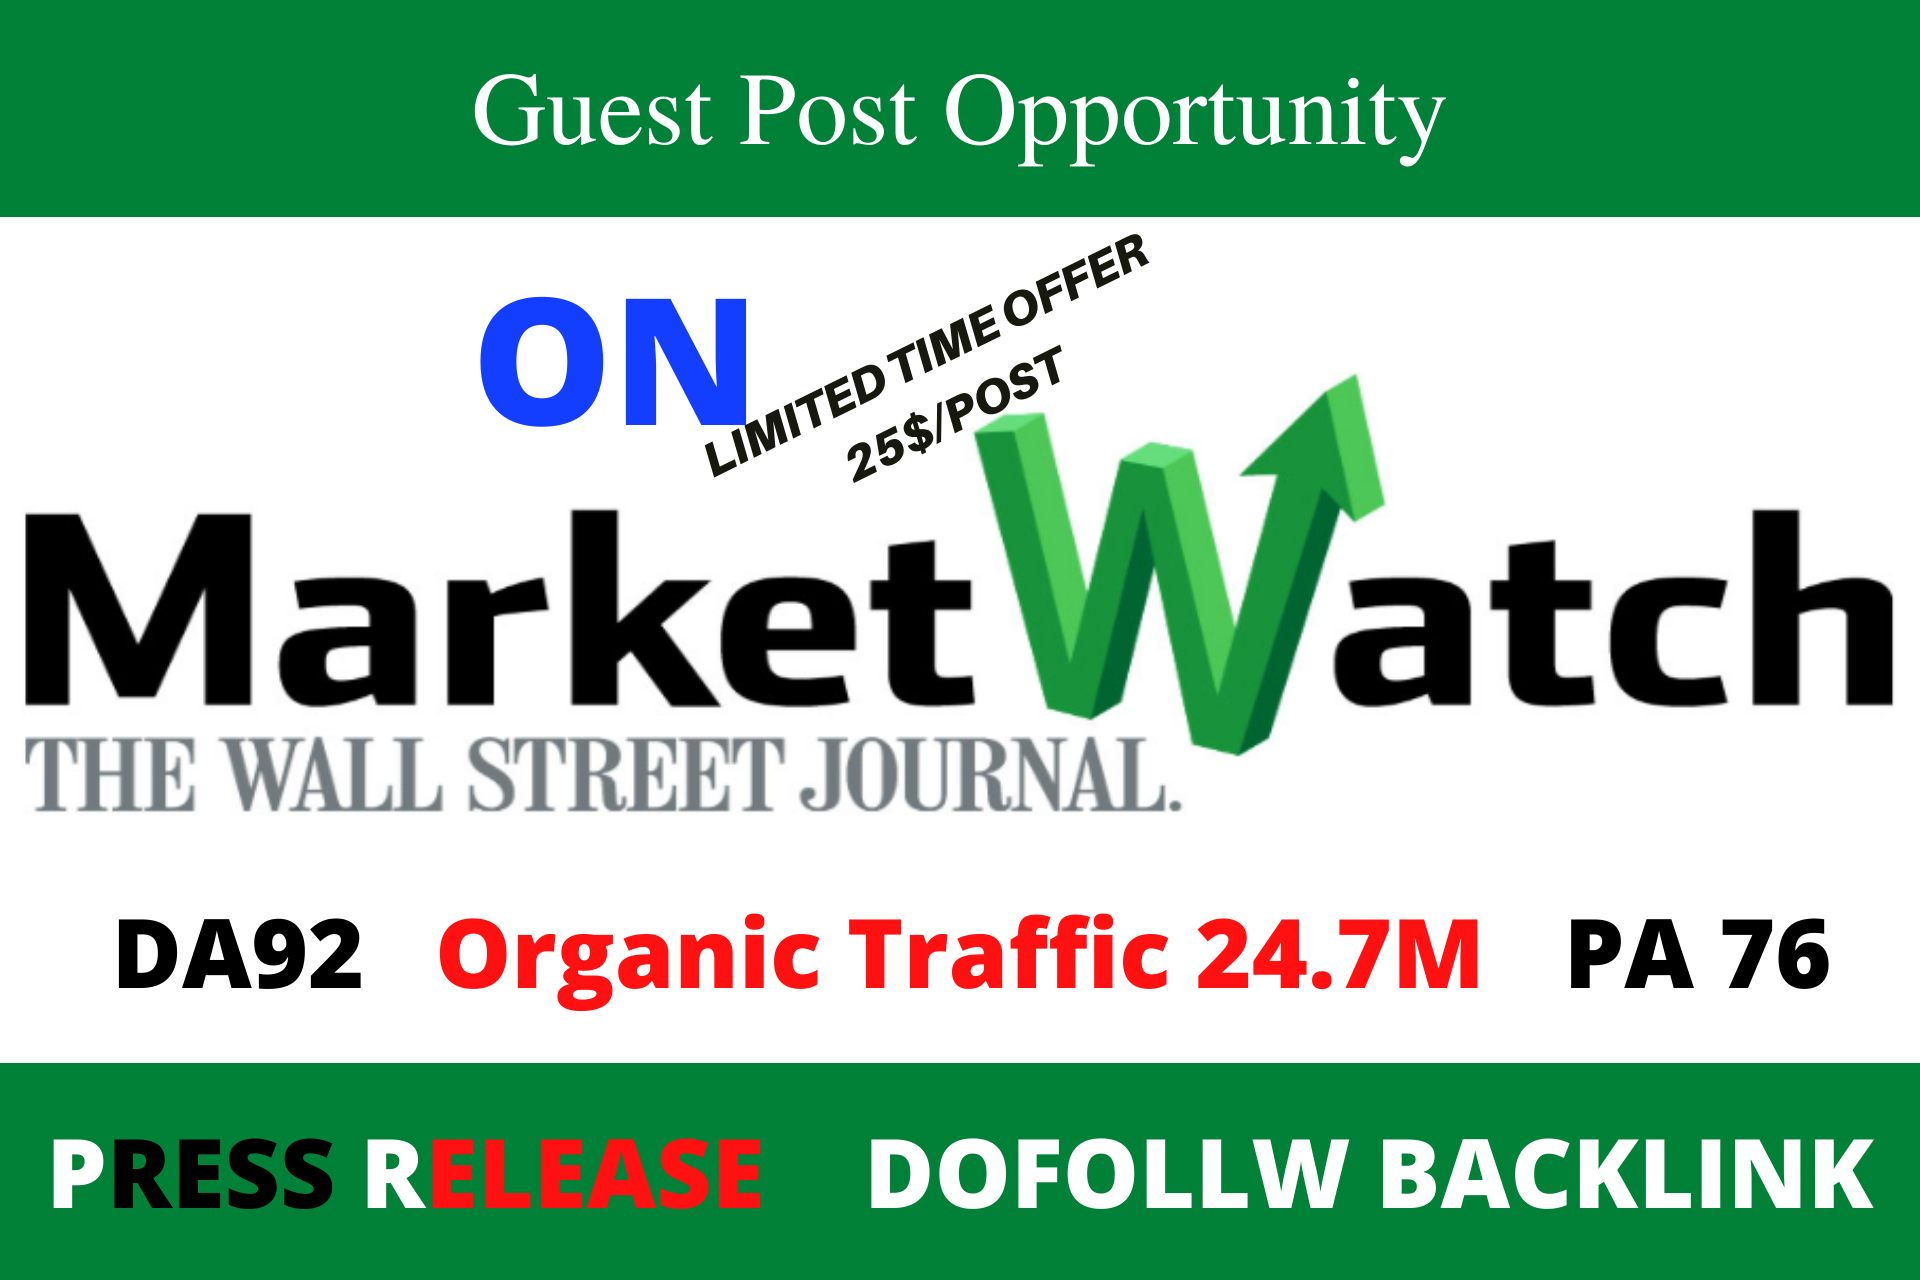 I will do marketwatch press release DA 91 organic traffic 24m